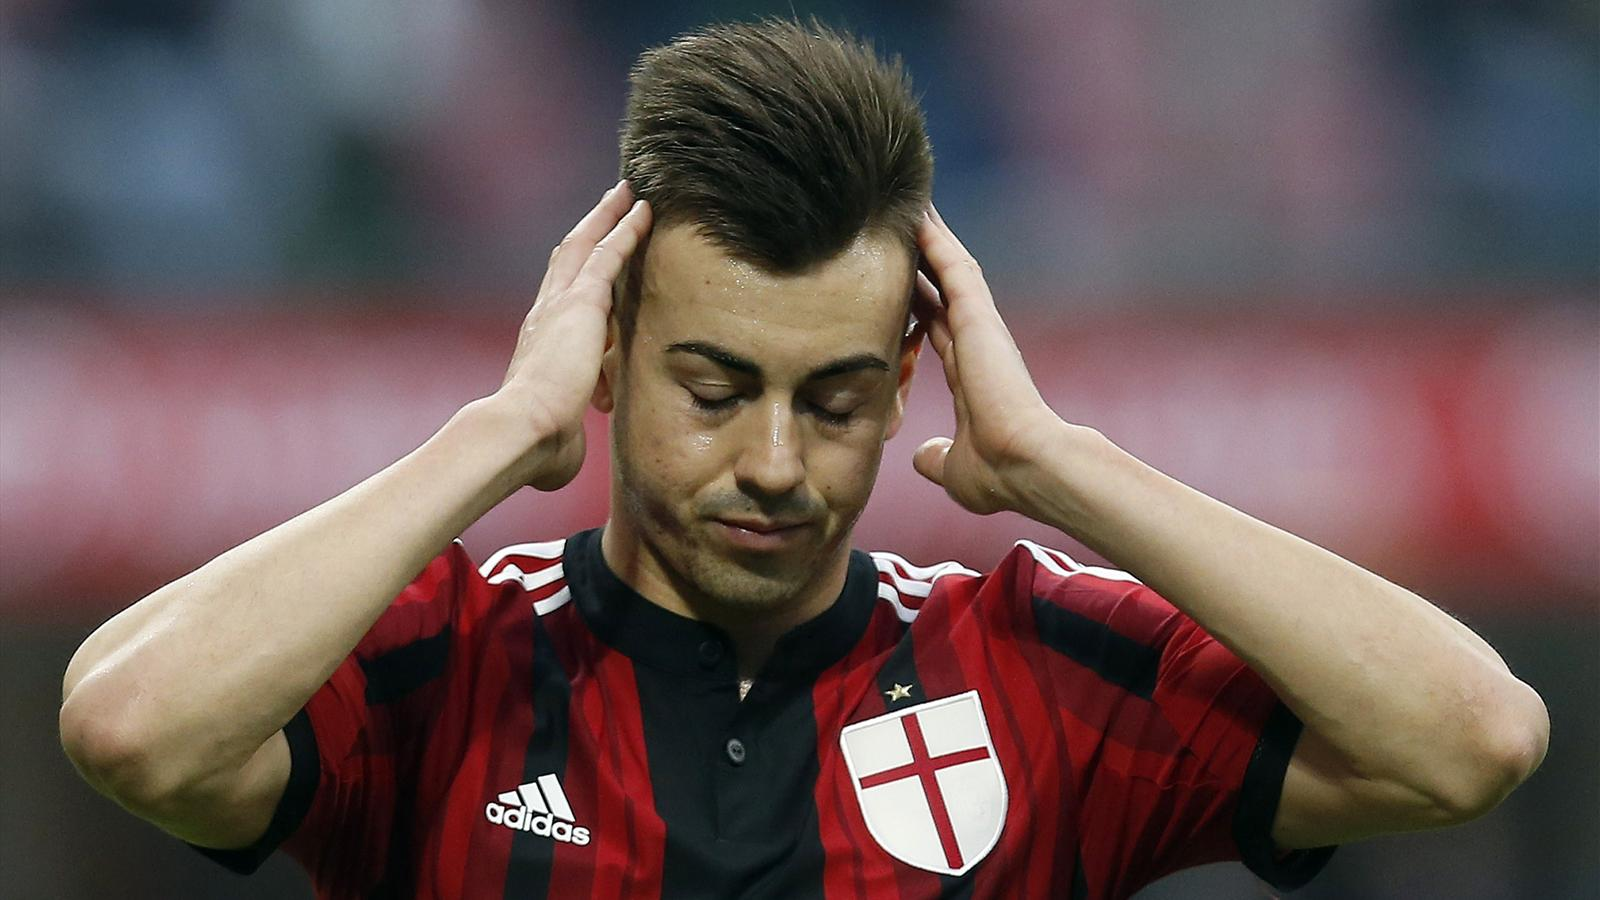 El Shaarawy Hairstyle El Shaarawy Hairstyle Boots Personalized And